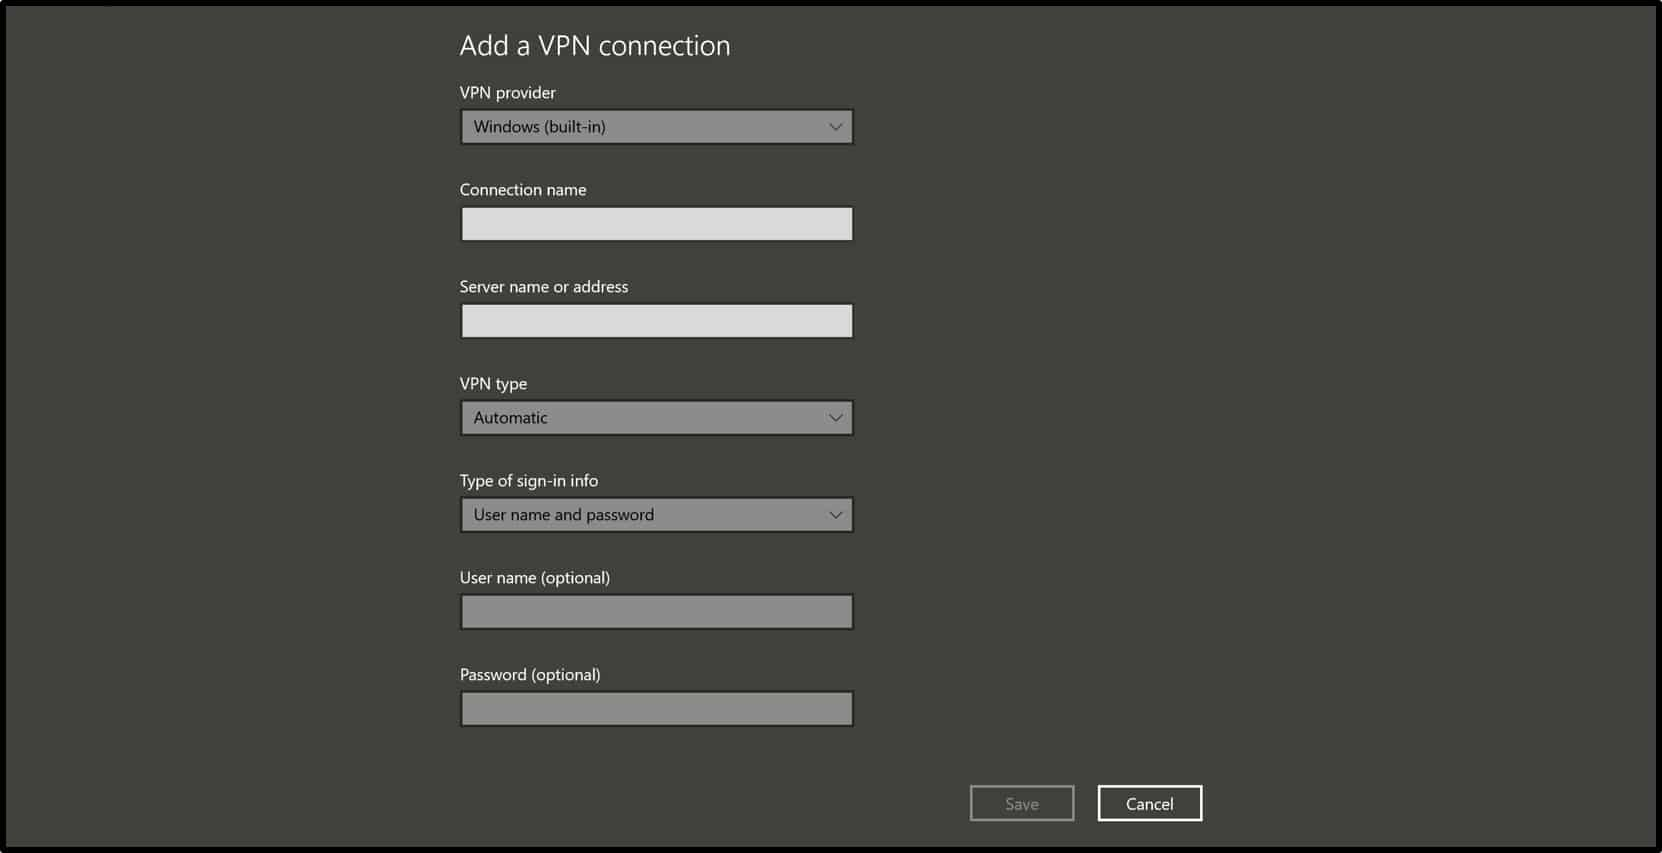 cd195d19b69a6633745884d997ed65cd - How To Activate Vpn On Windows 10